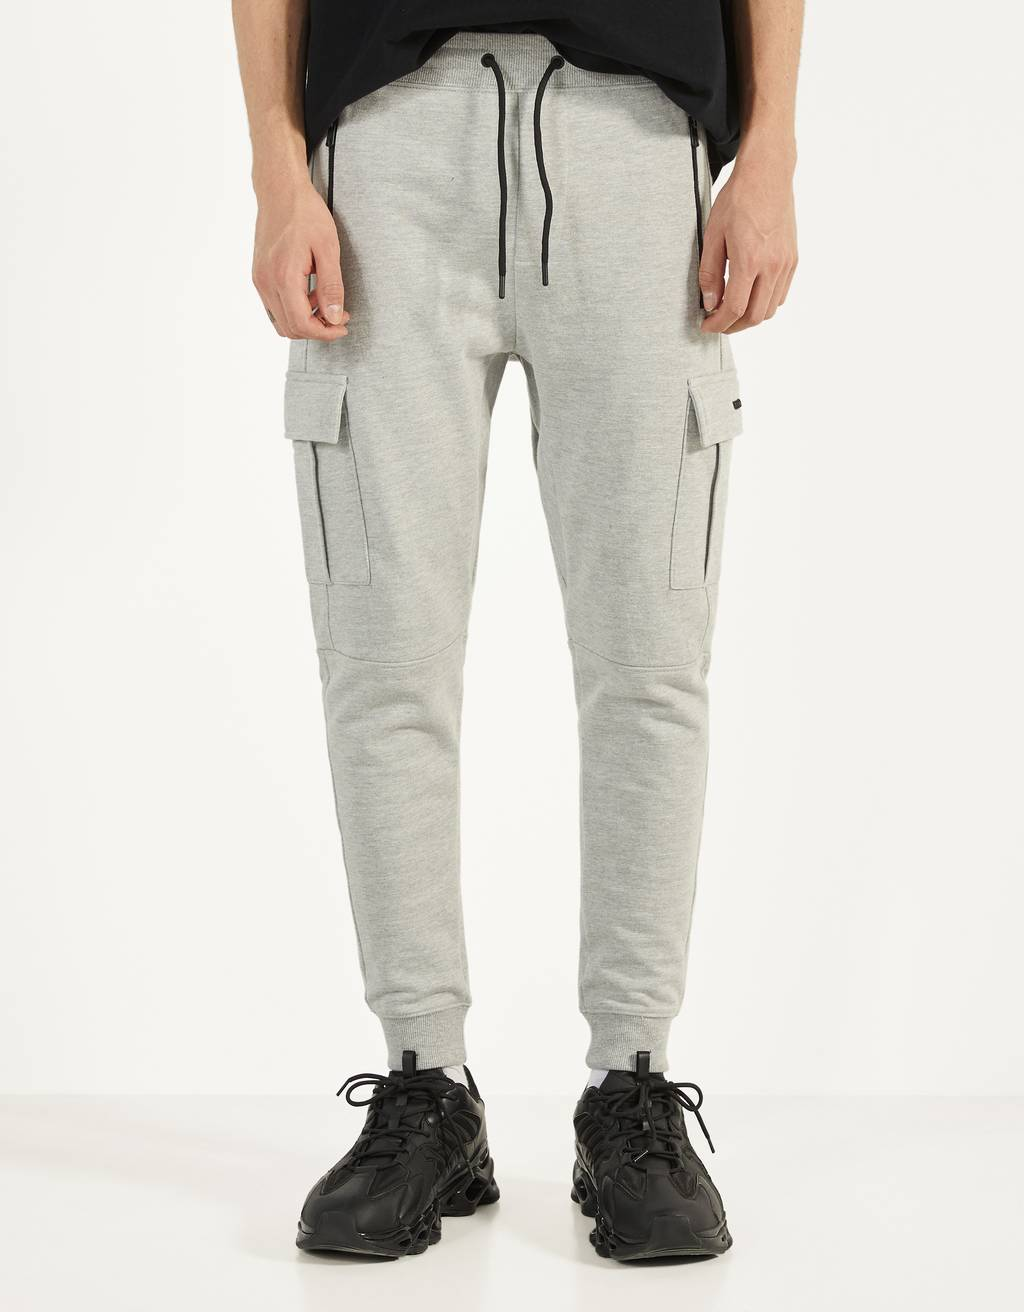 Plush cargo sweatpants